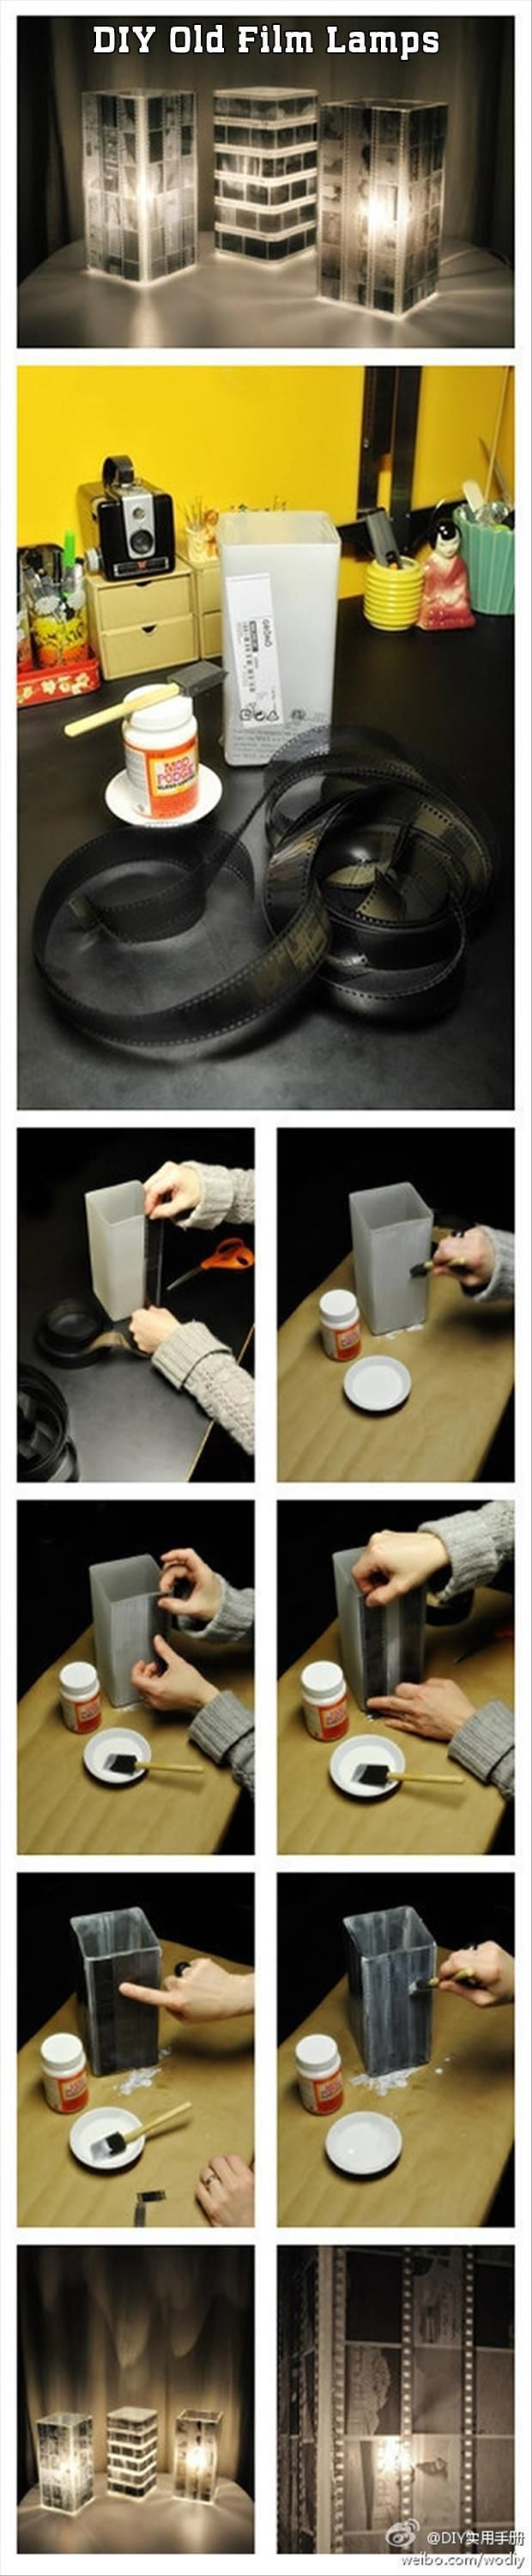 Love love love love love!  this would be great with my old negatives!!  hmmmmm great idea!